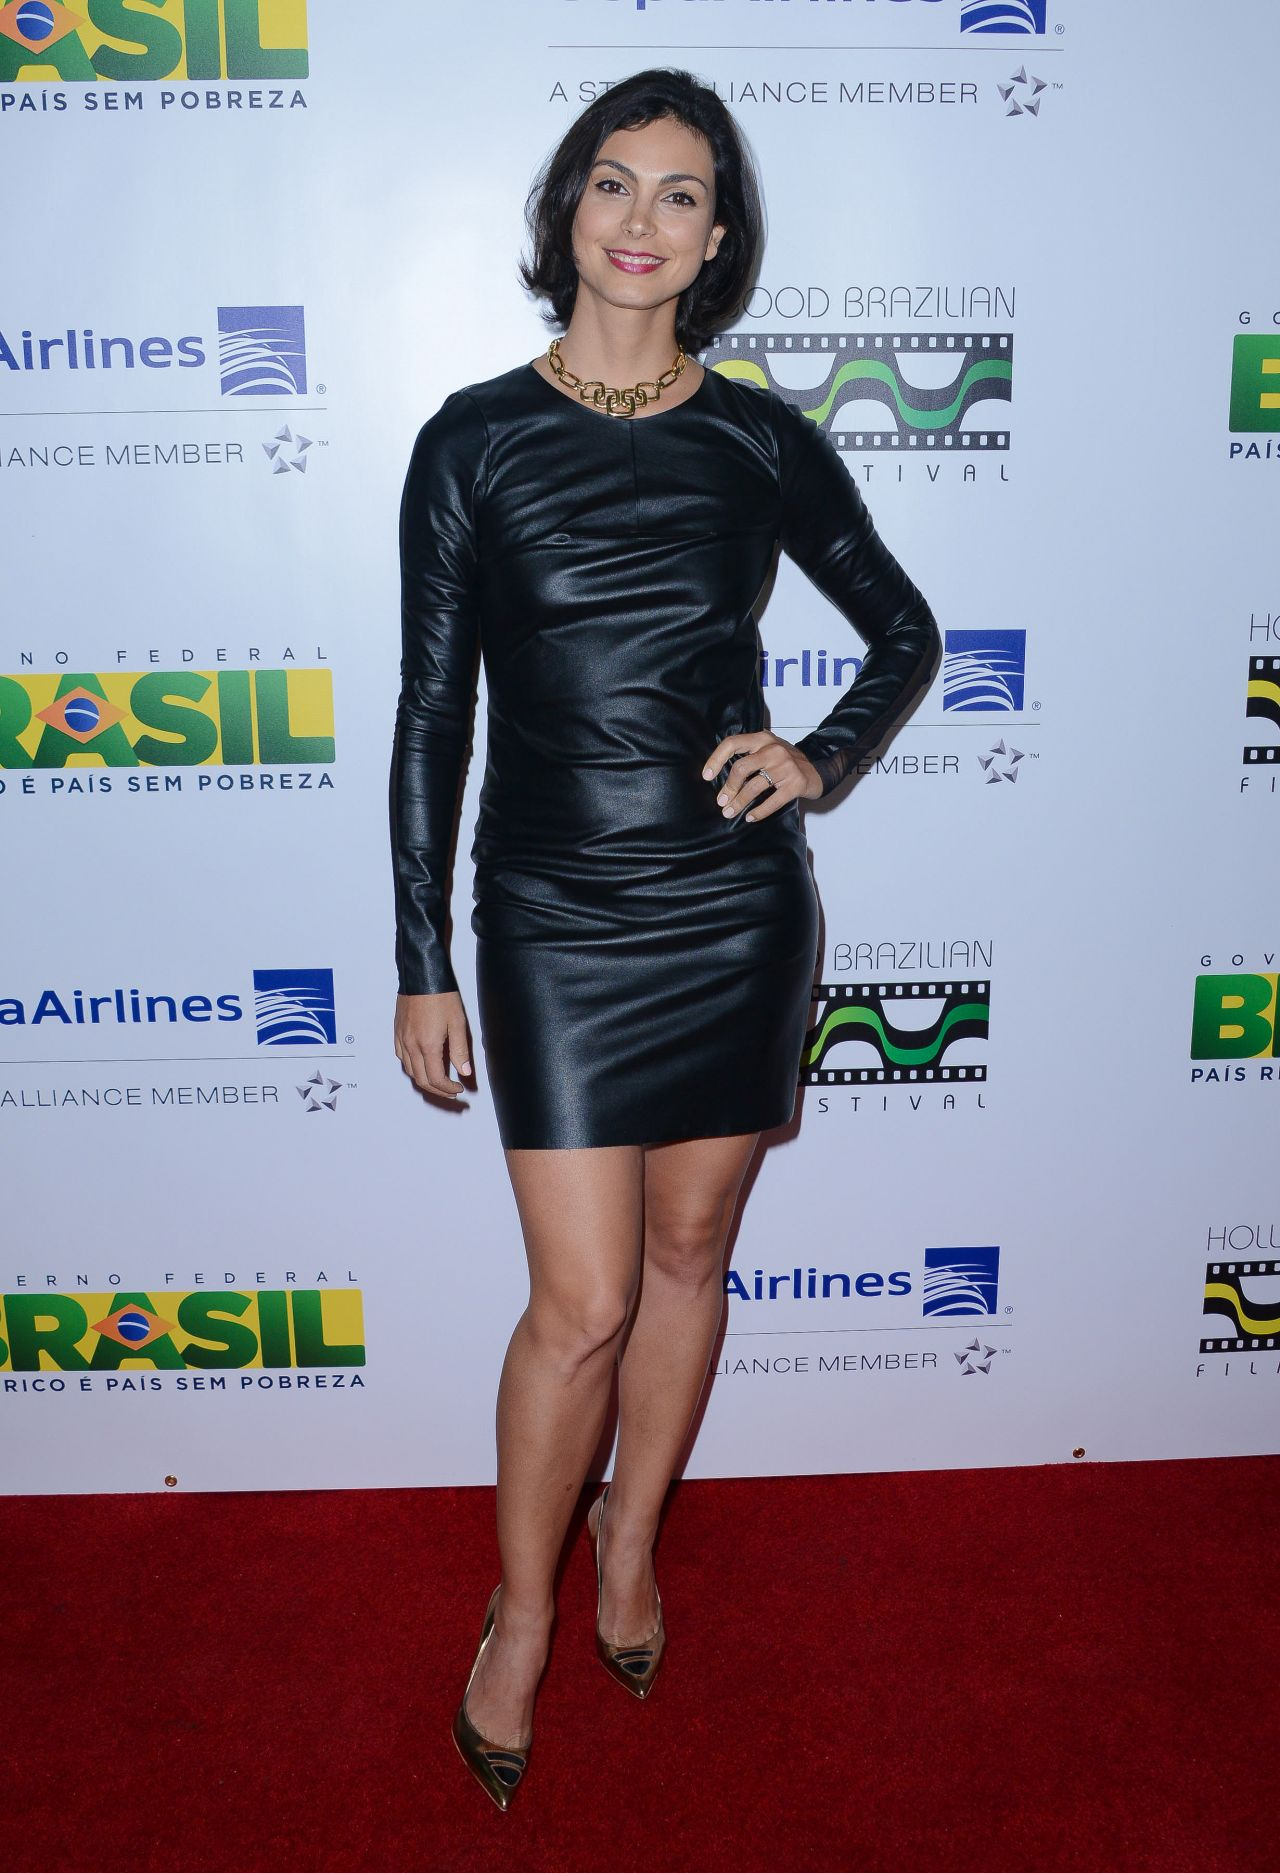 Morena Baccarin - 2014 Hollywood Brazilian Film Festival Opening Night Gala